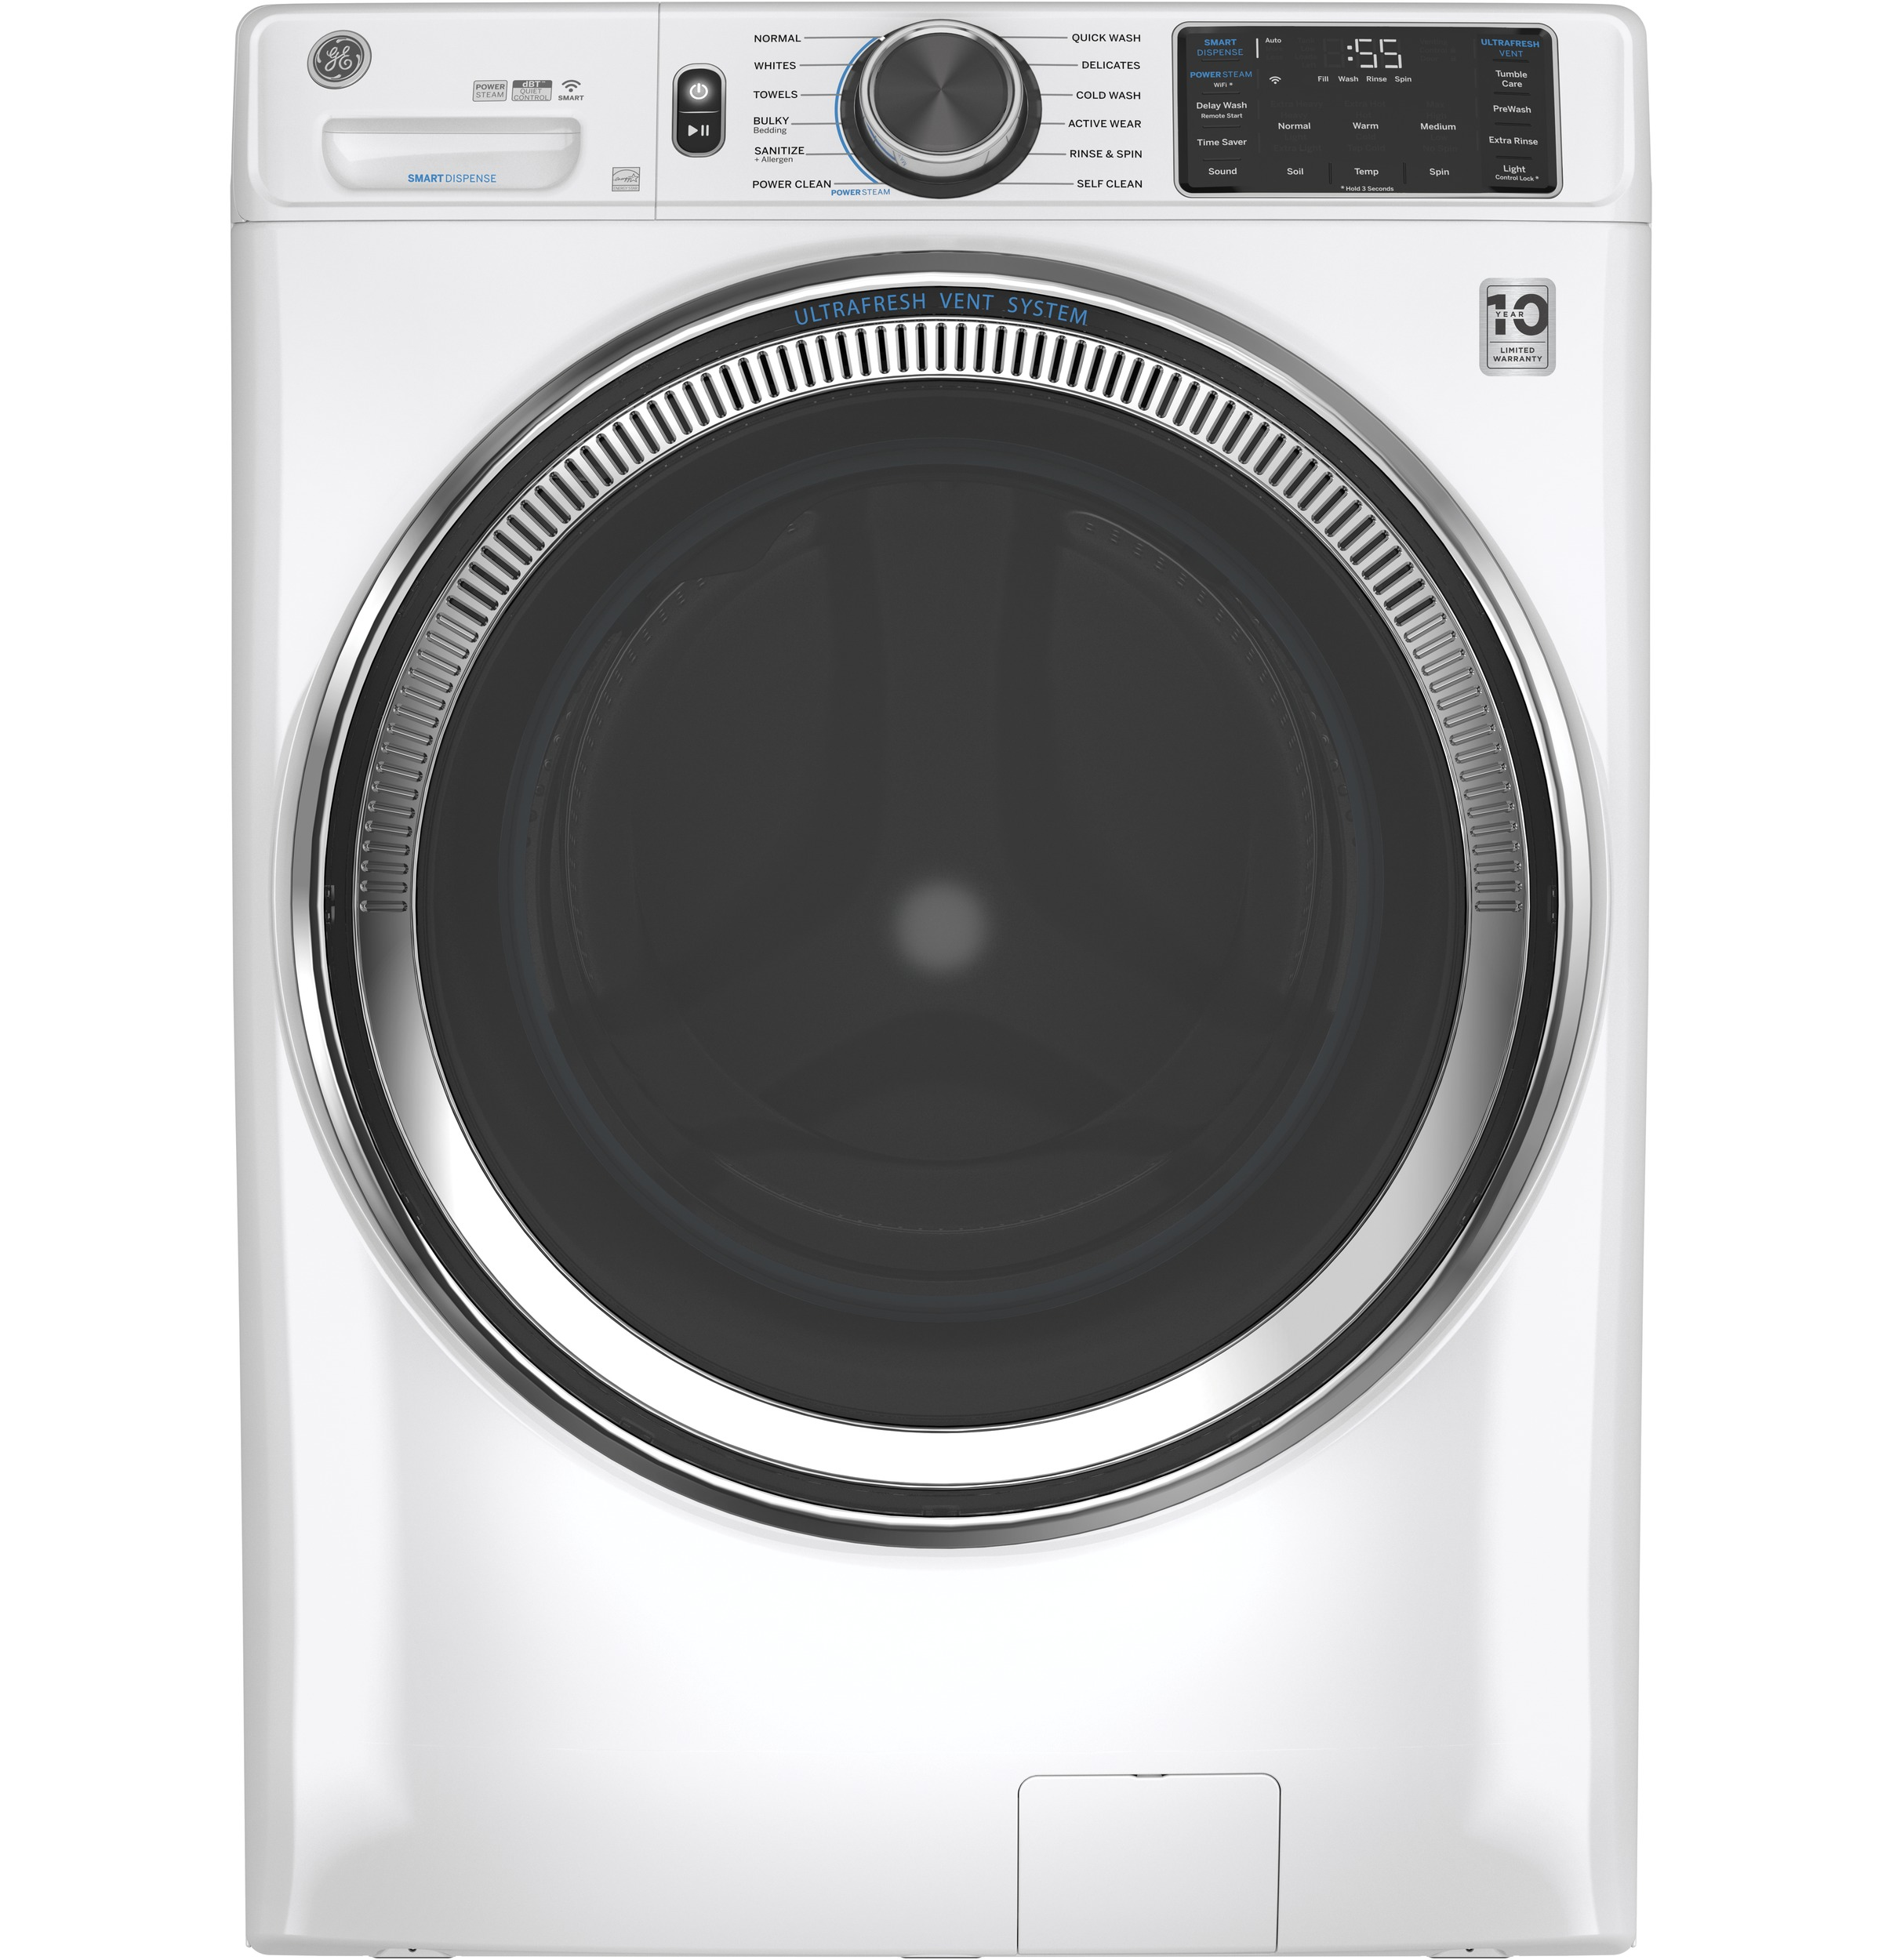 Model: GFW650SSNWW | GE GE® 4.8 cu. ft. Capacity Smart Front Load ENERGY STAR® Steam Washer with SmartDispense™ UltraFresh Vent System with OdorBlock™ and Sanitize + Allergen